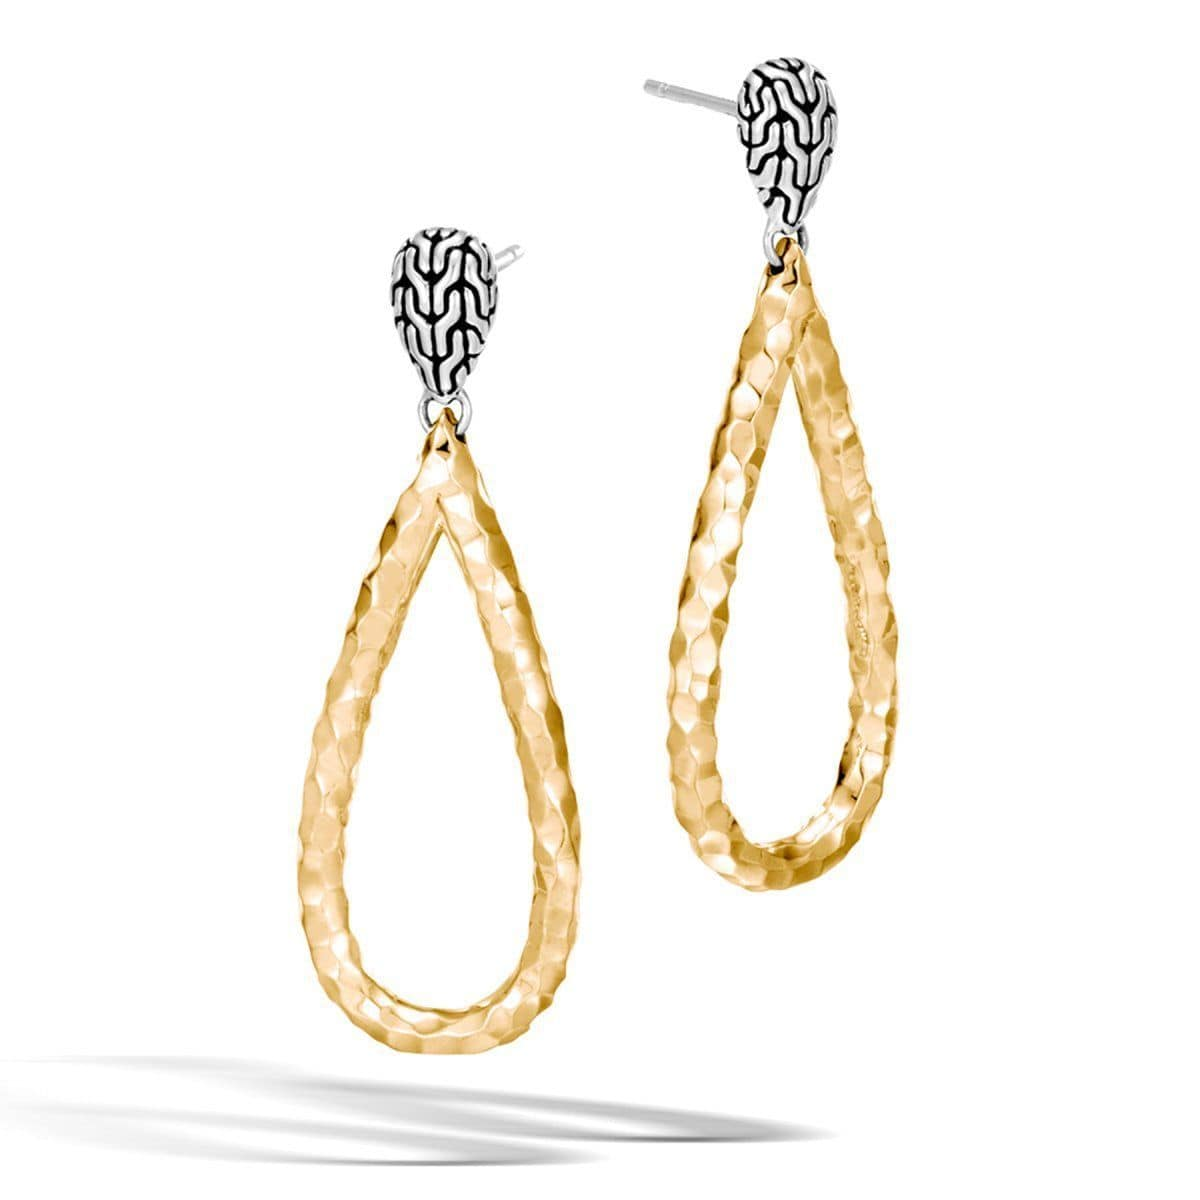 Classic Chain Silver & 18K Gold Earrings - EZ999582